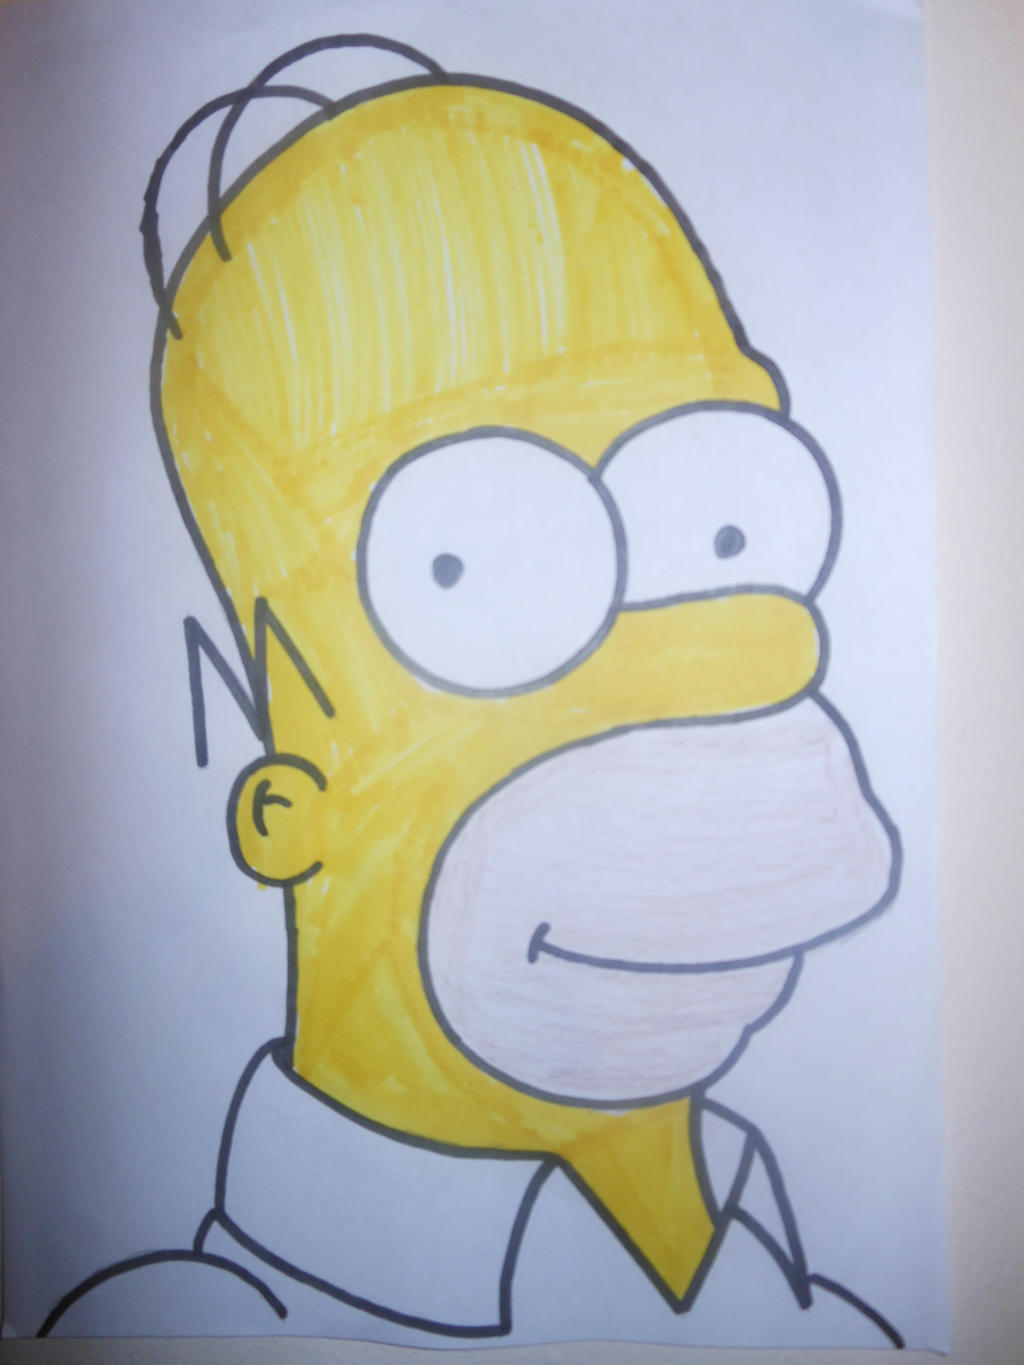 Homer Simpson's head by sgtjack2016